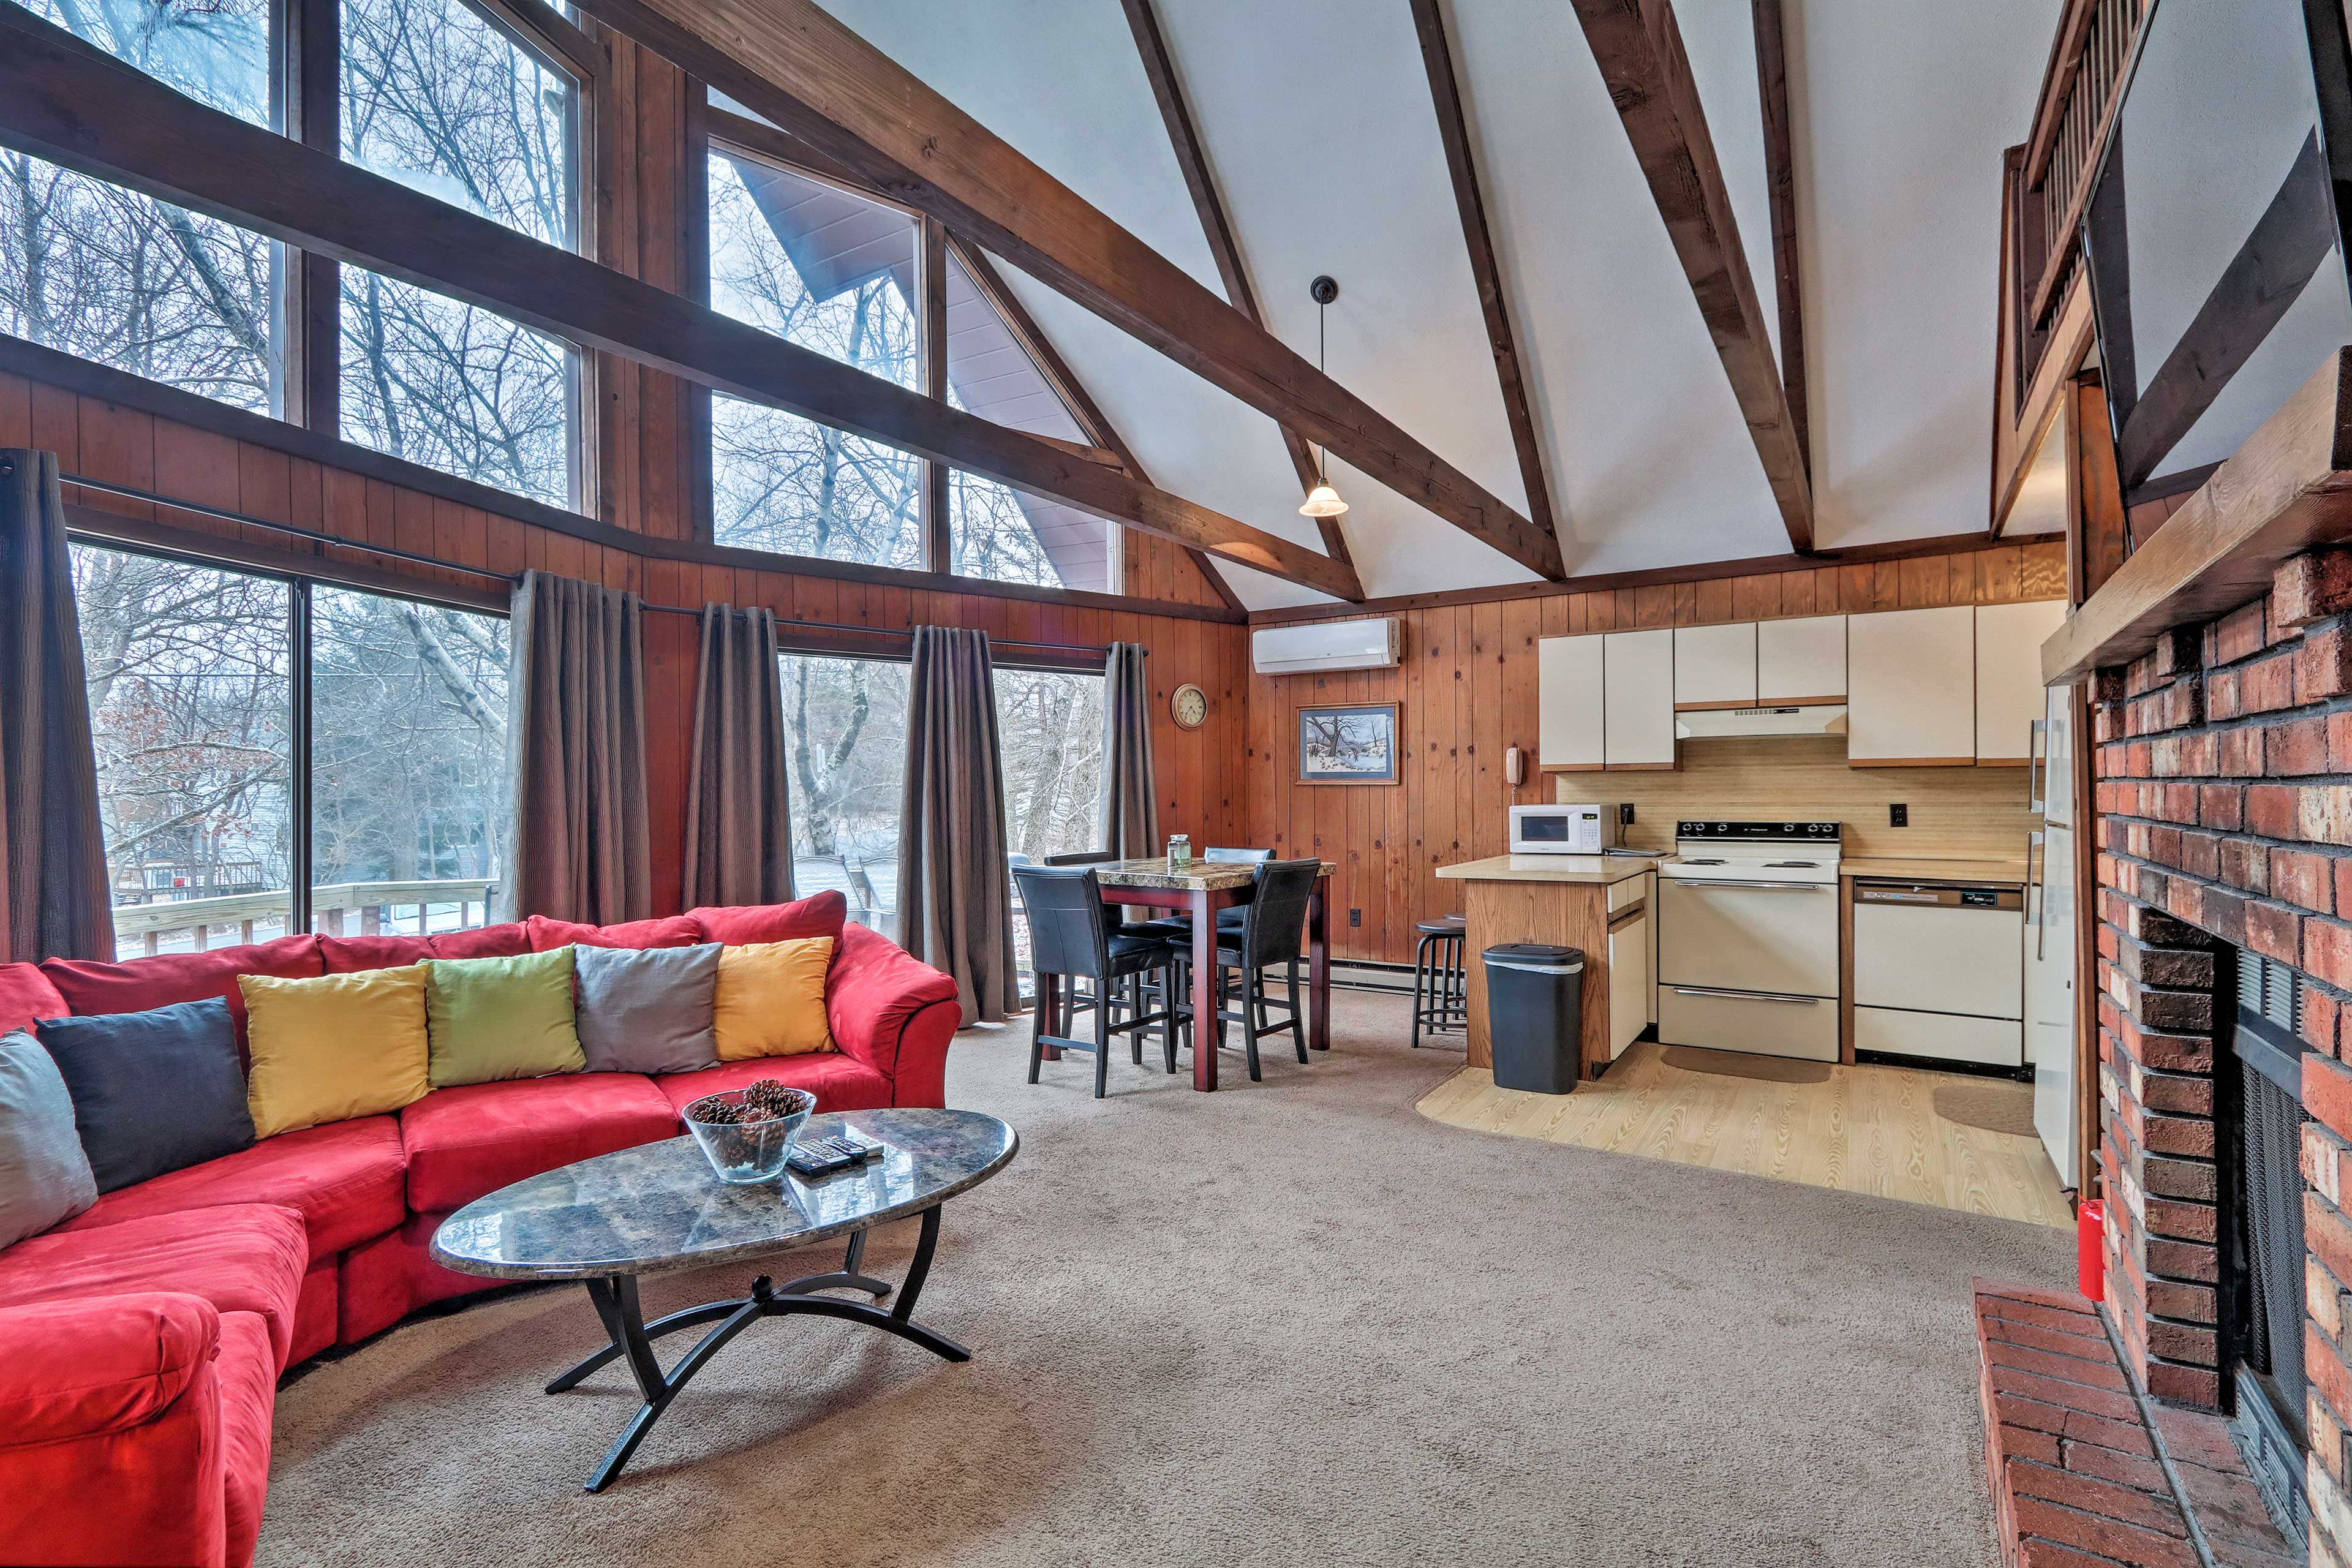 Vaulted ceilings and exposed wood beams provide a cabin feel.